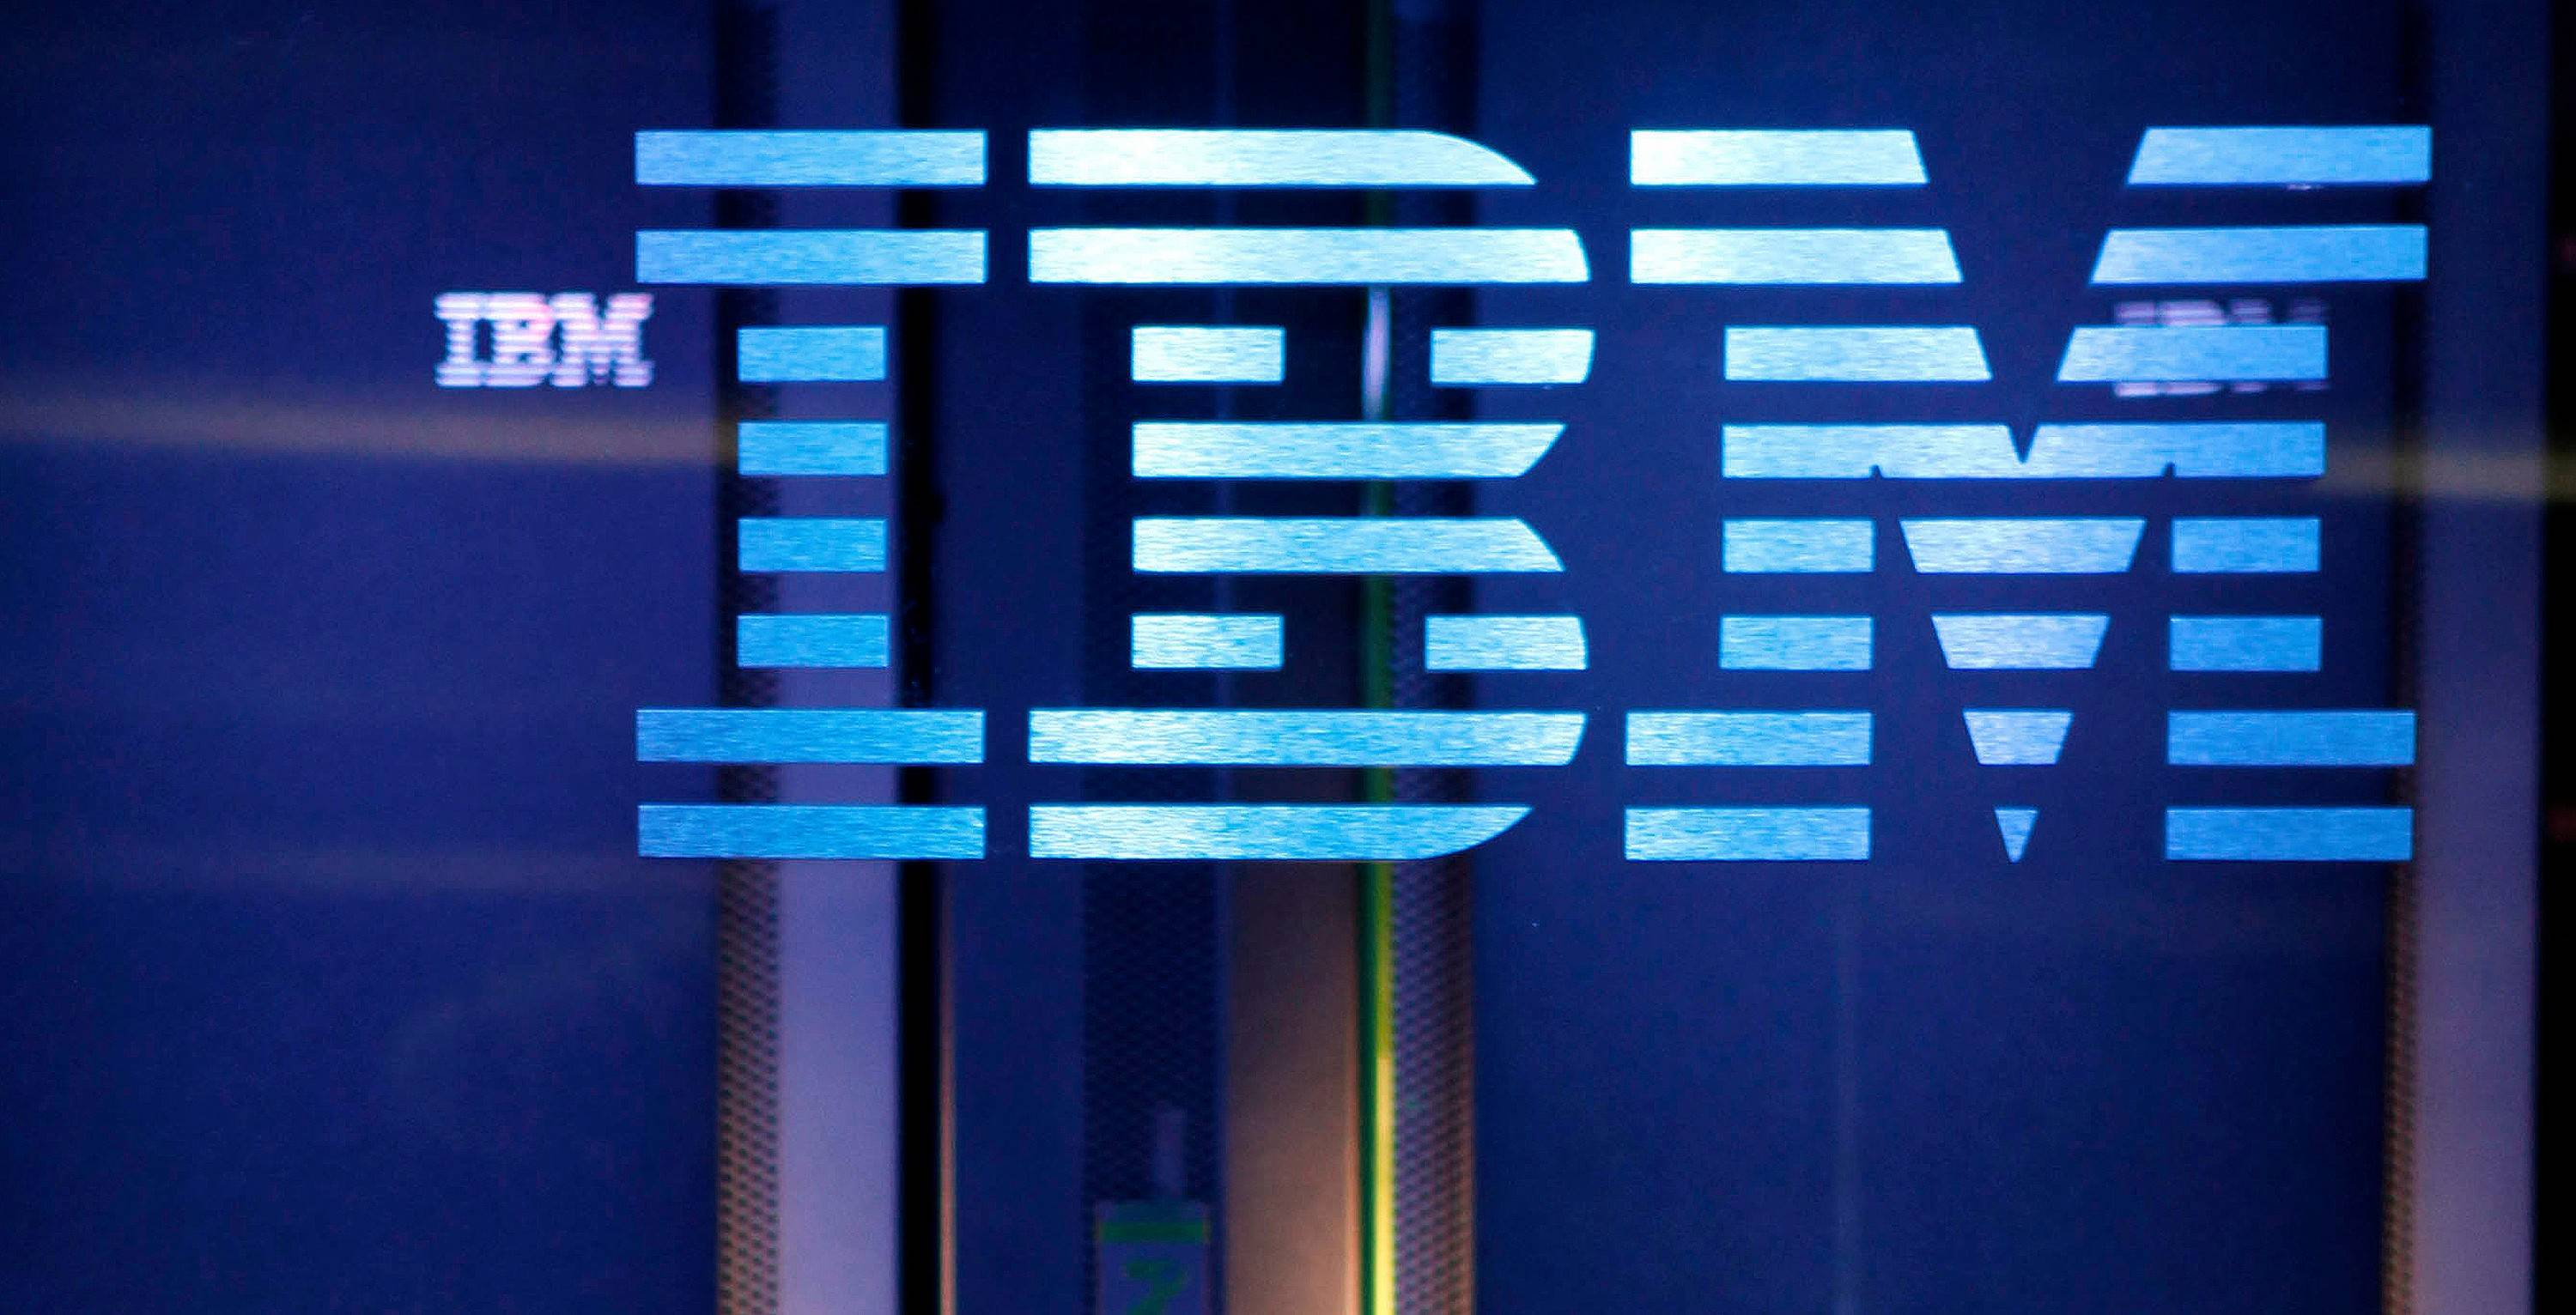 IBM says it has achieved a breakthrough in security technology that will allow every business from banks to retailers to travel-booking companies to encrypt their customer data on a massive scale — turning most if not all of their digital information into gibberish that is illegible to thieves with its new mainframe.